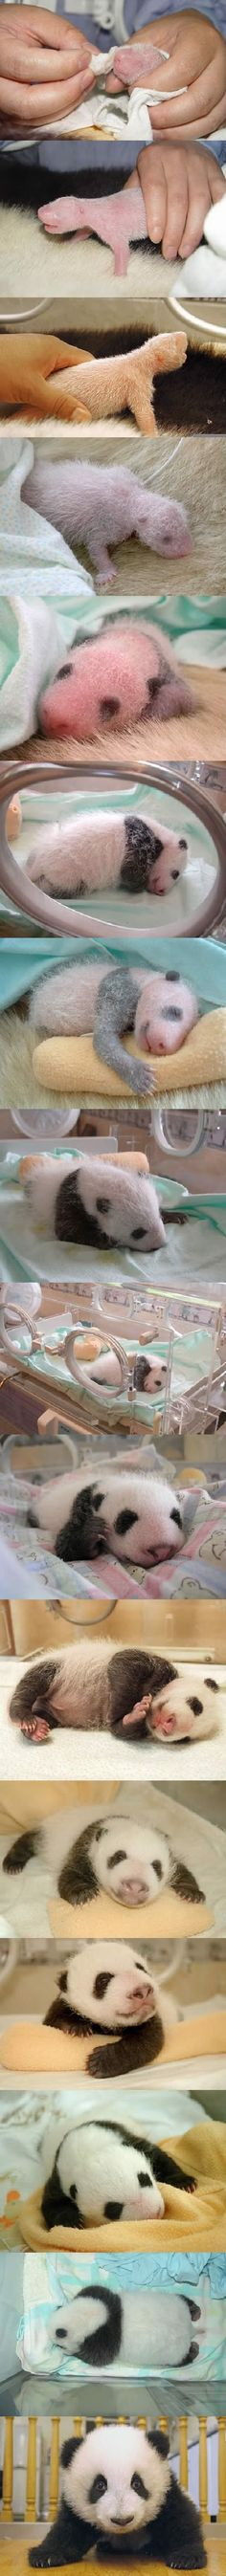 Who doesn't like Pandas? when I disapper it because I went to China to pick up Panda Poo!